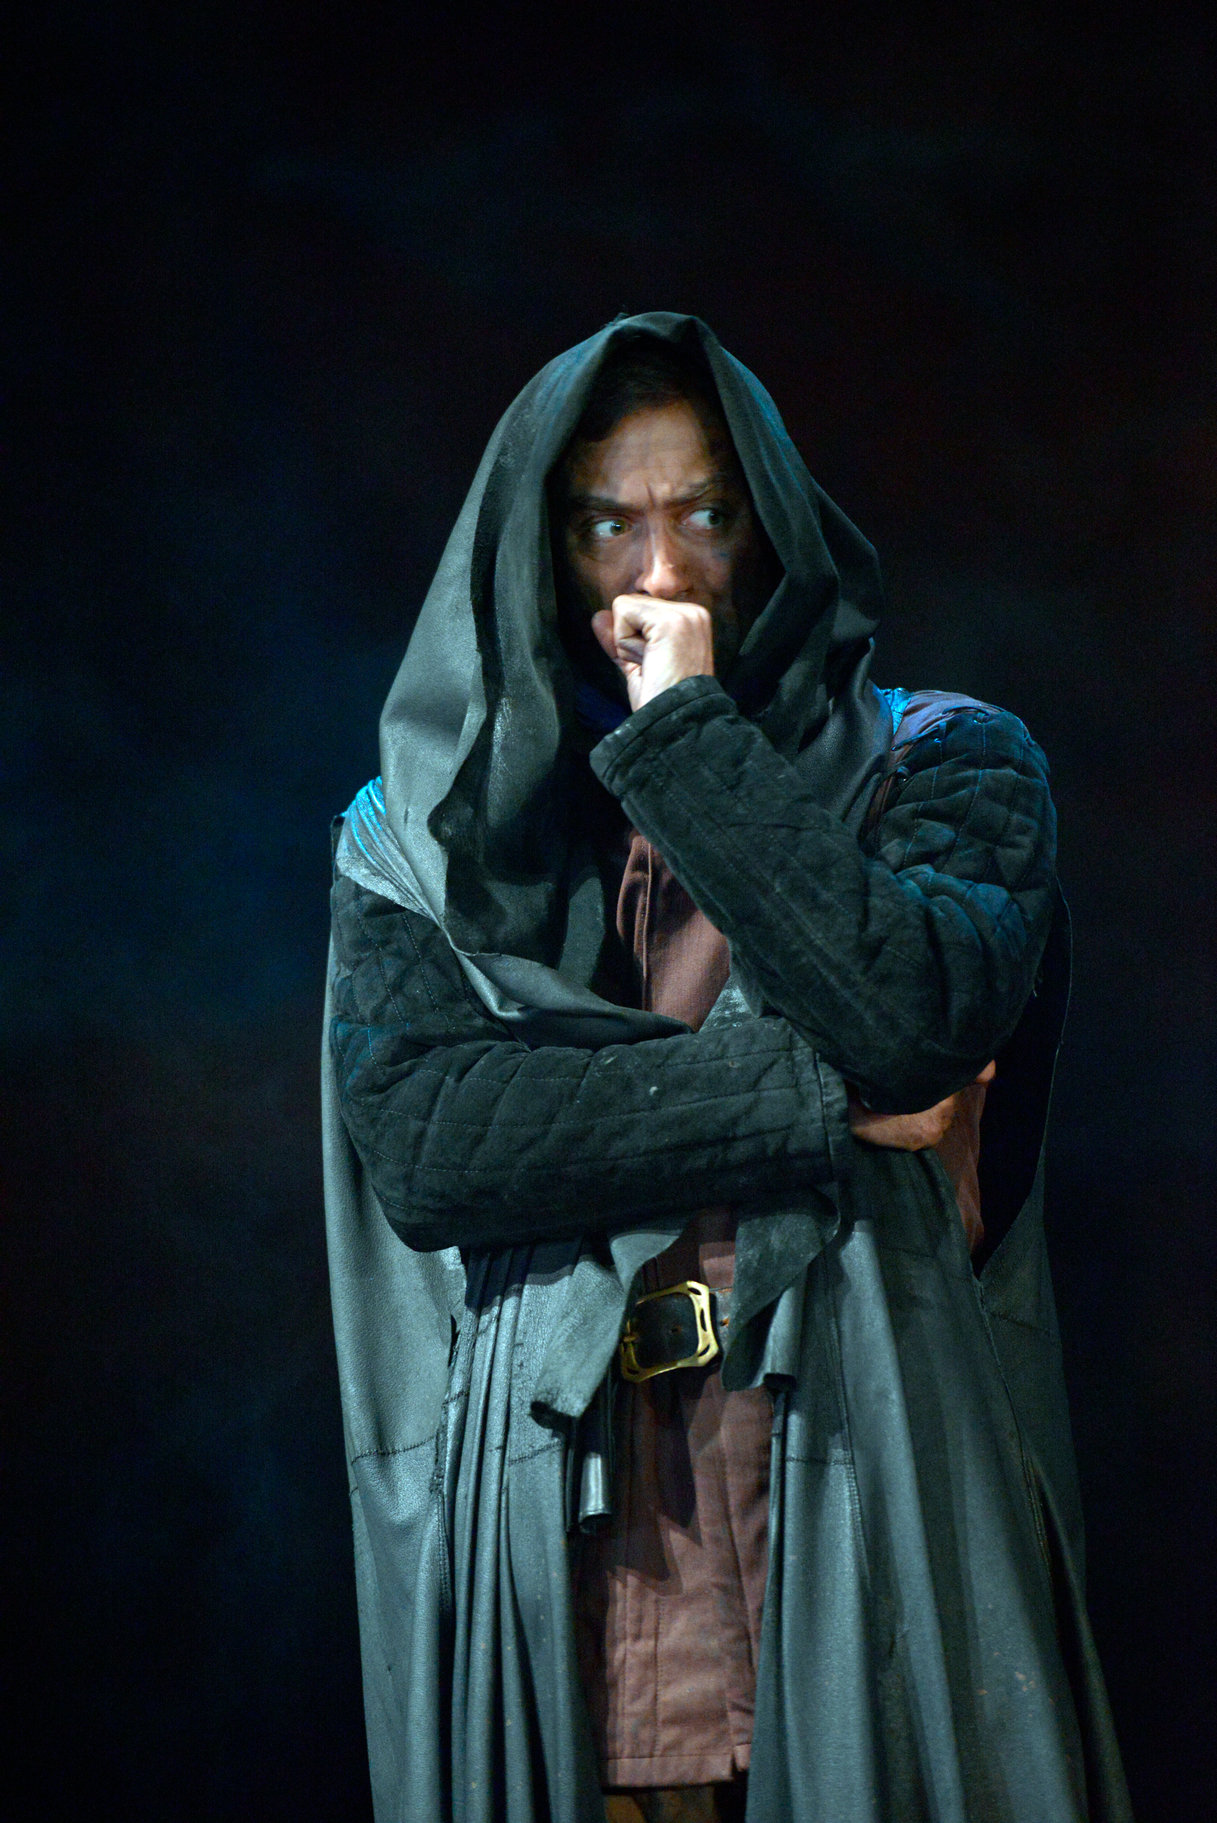 Henry in disguise wearing a dark cloak over his clothes and the hood pulled up over his head in the 2015 production of Henry V